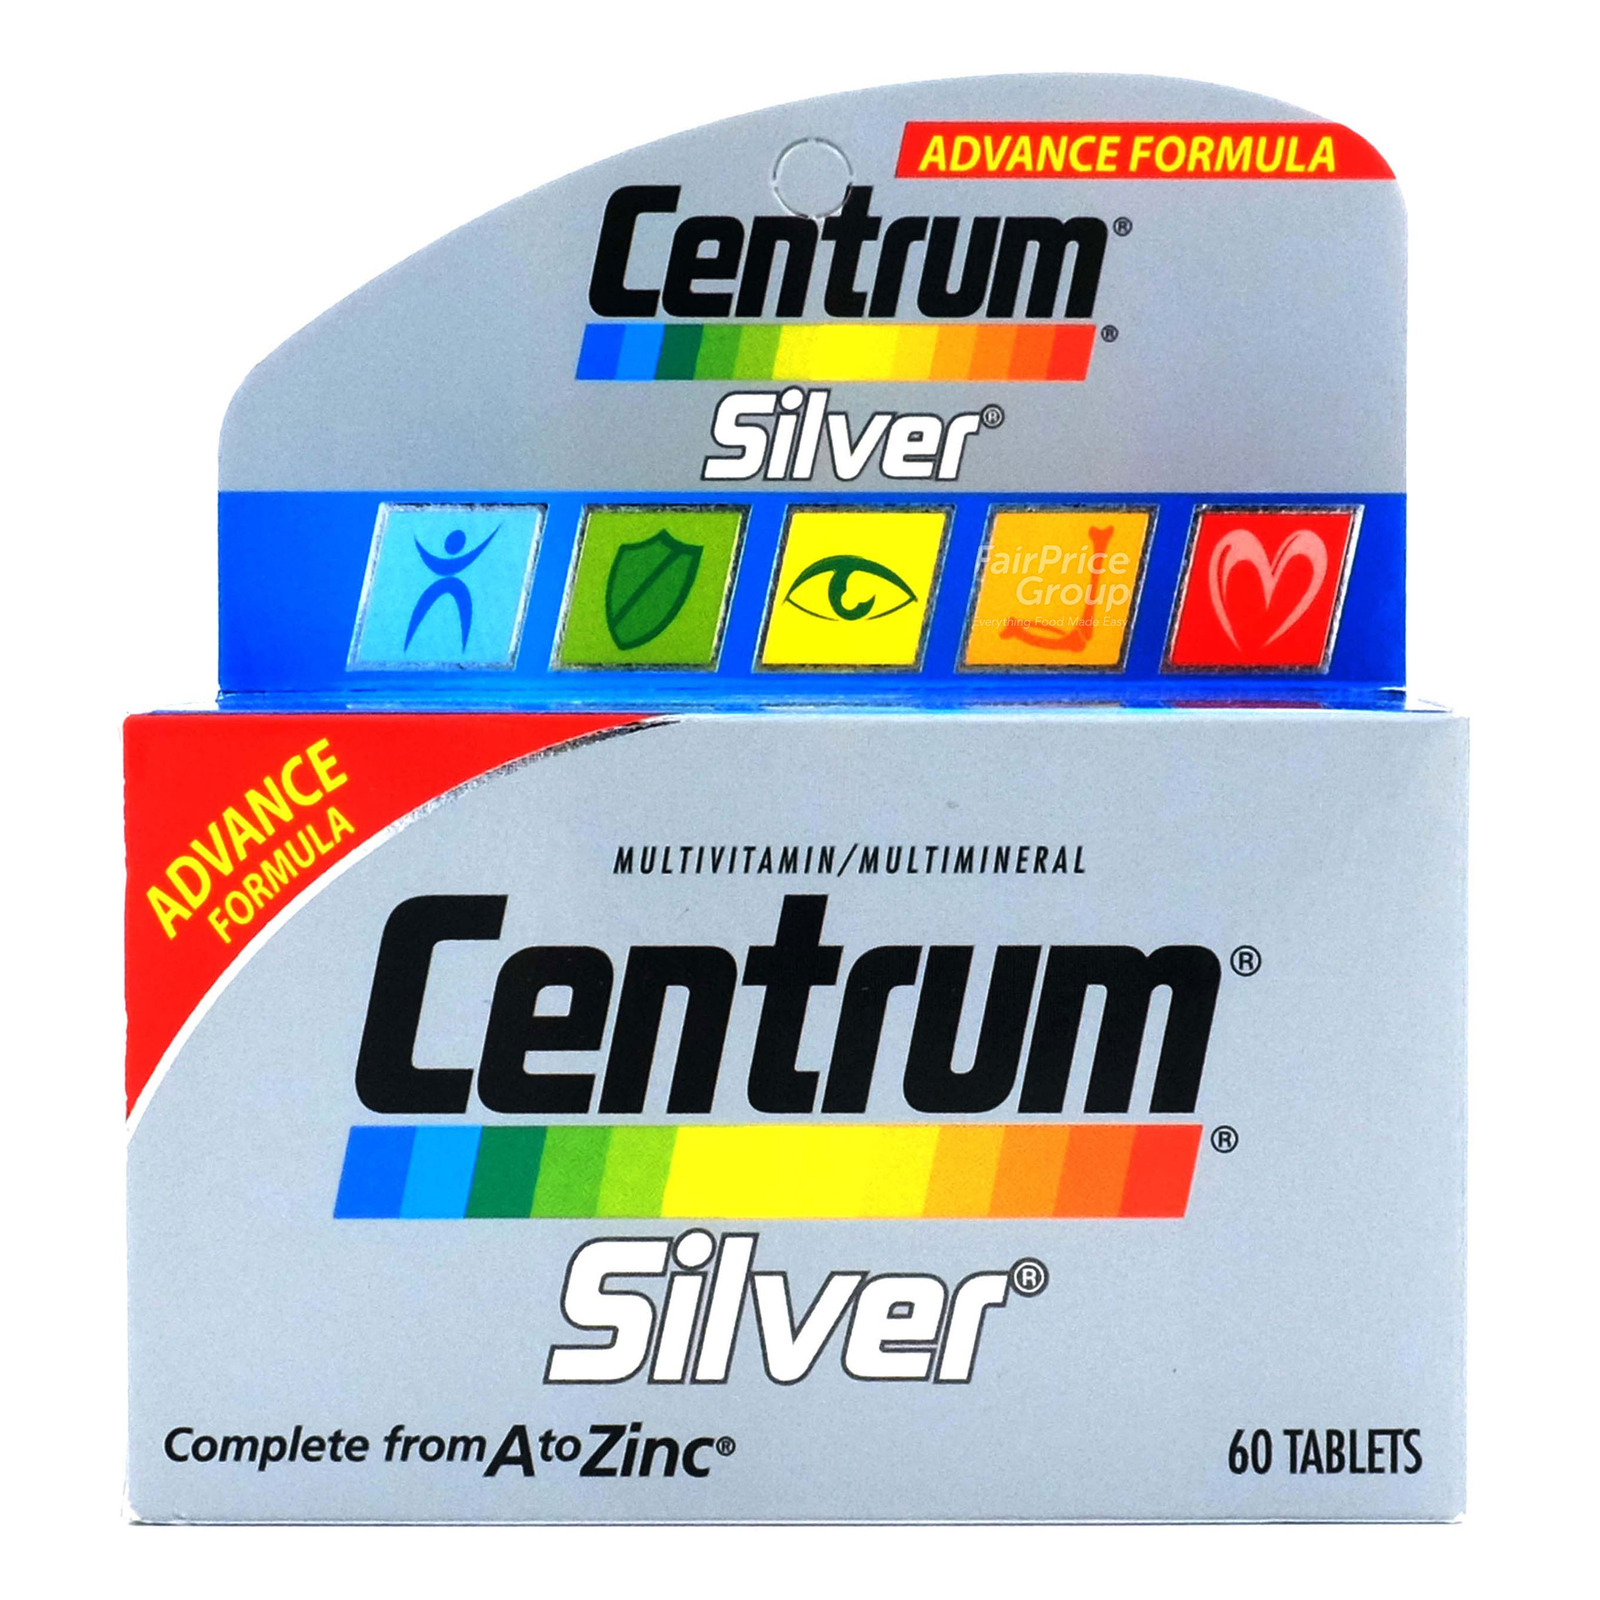 Centrum Multi Vitamin Tablets - Silver